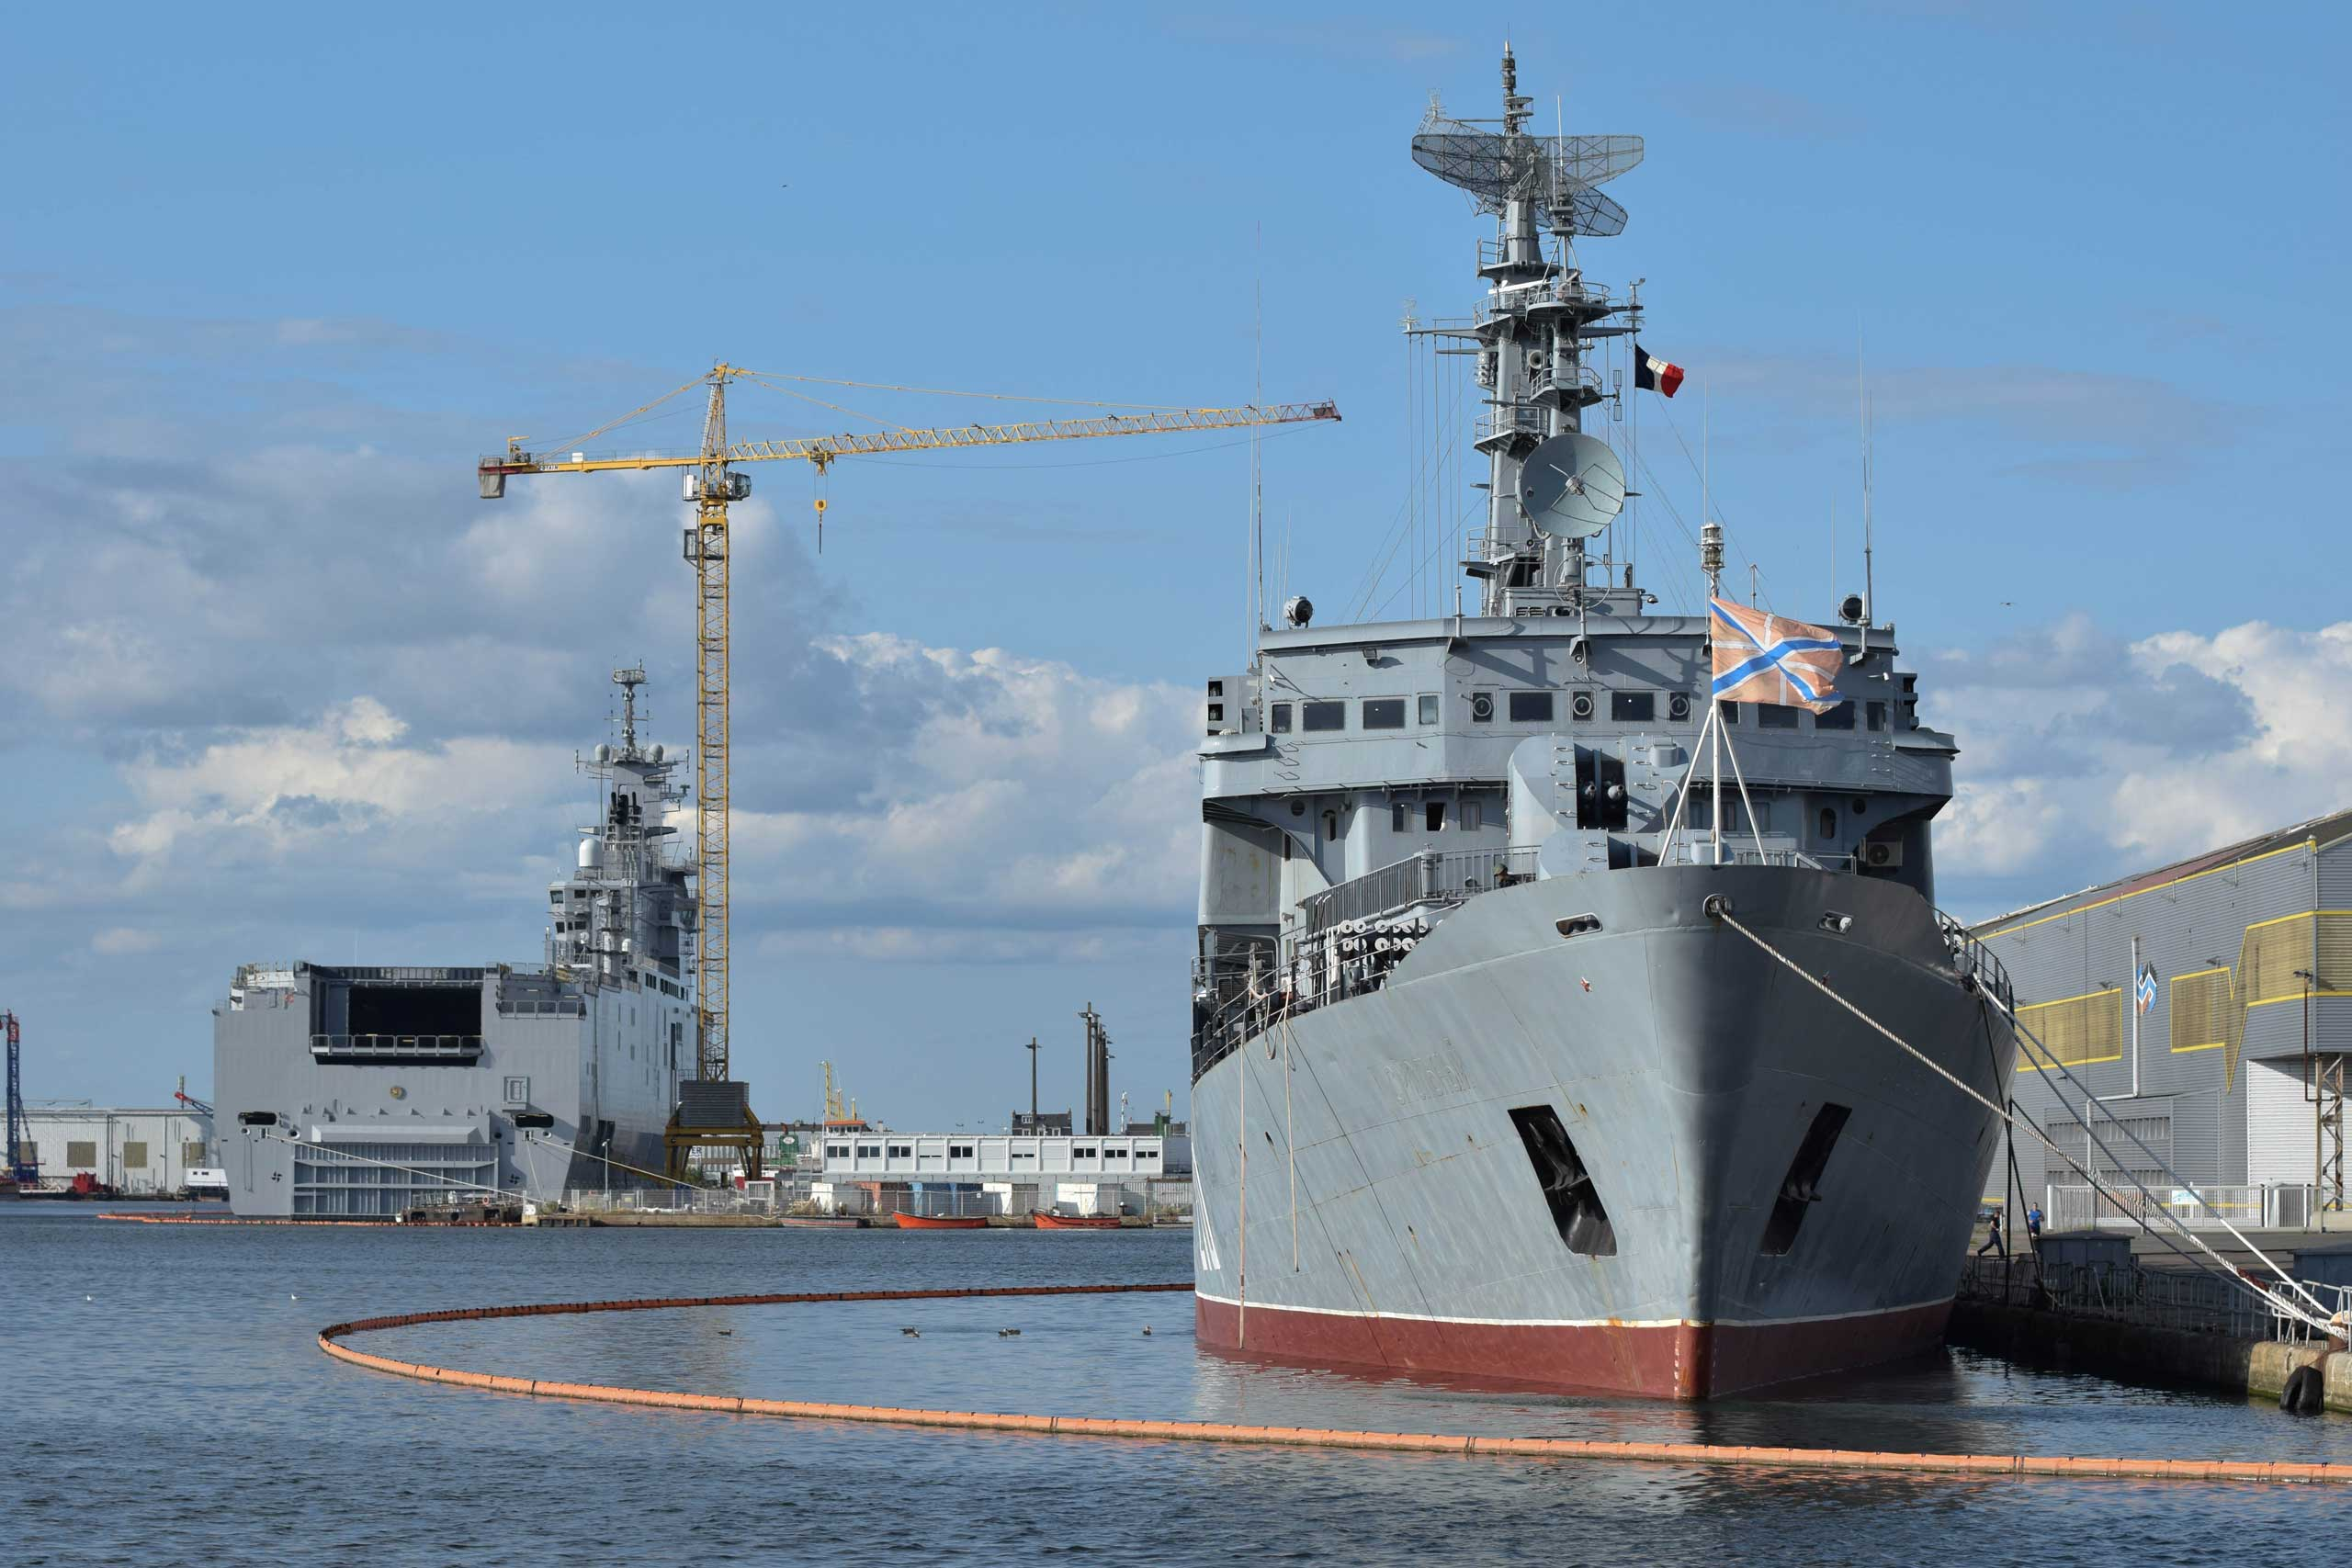 A Mistral-class amphibious assault ship is docked in the shipyard of Saint-Nazaire, Aug. 20, 2014, Saint-Nazaire, France.